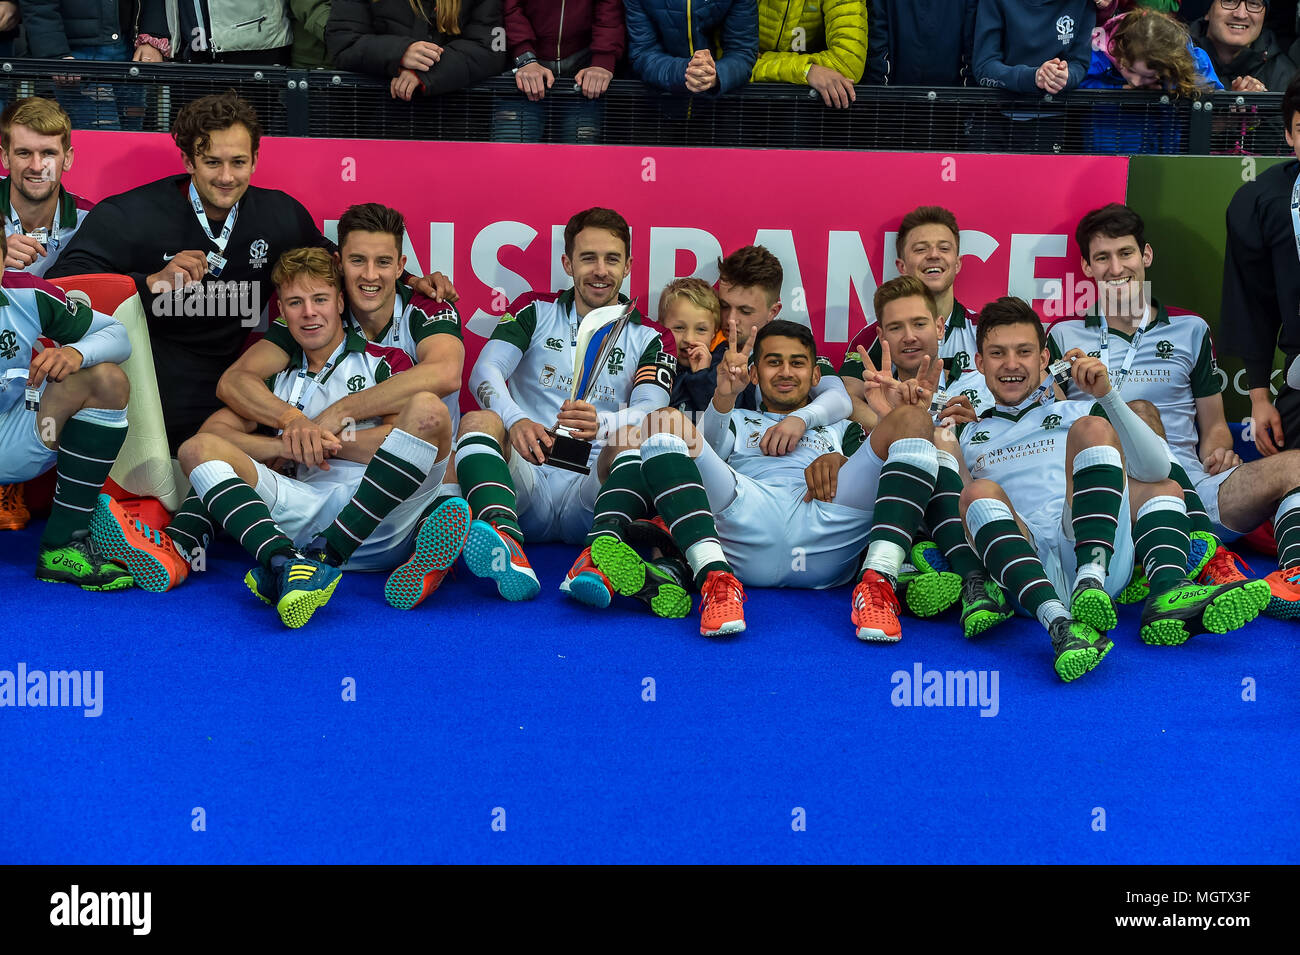 London, UK. 29 April 2018. Surbiton team celebrate after winning the England League during MHL Final between Hampstead & Westminster and Surbiton of the 2018 England Hockey League Final on Sunday, 29 April 2018. London, England. Credit: Taka G Wu Credit: Taka Wu/Alamy Live News Stock Photo